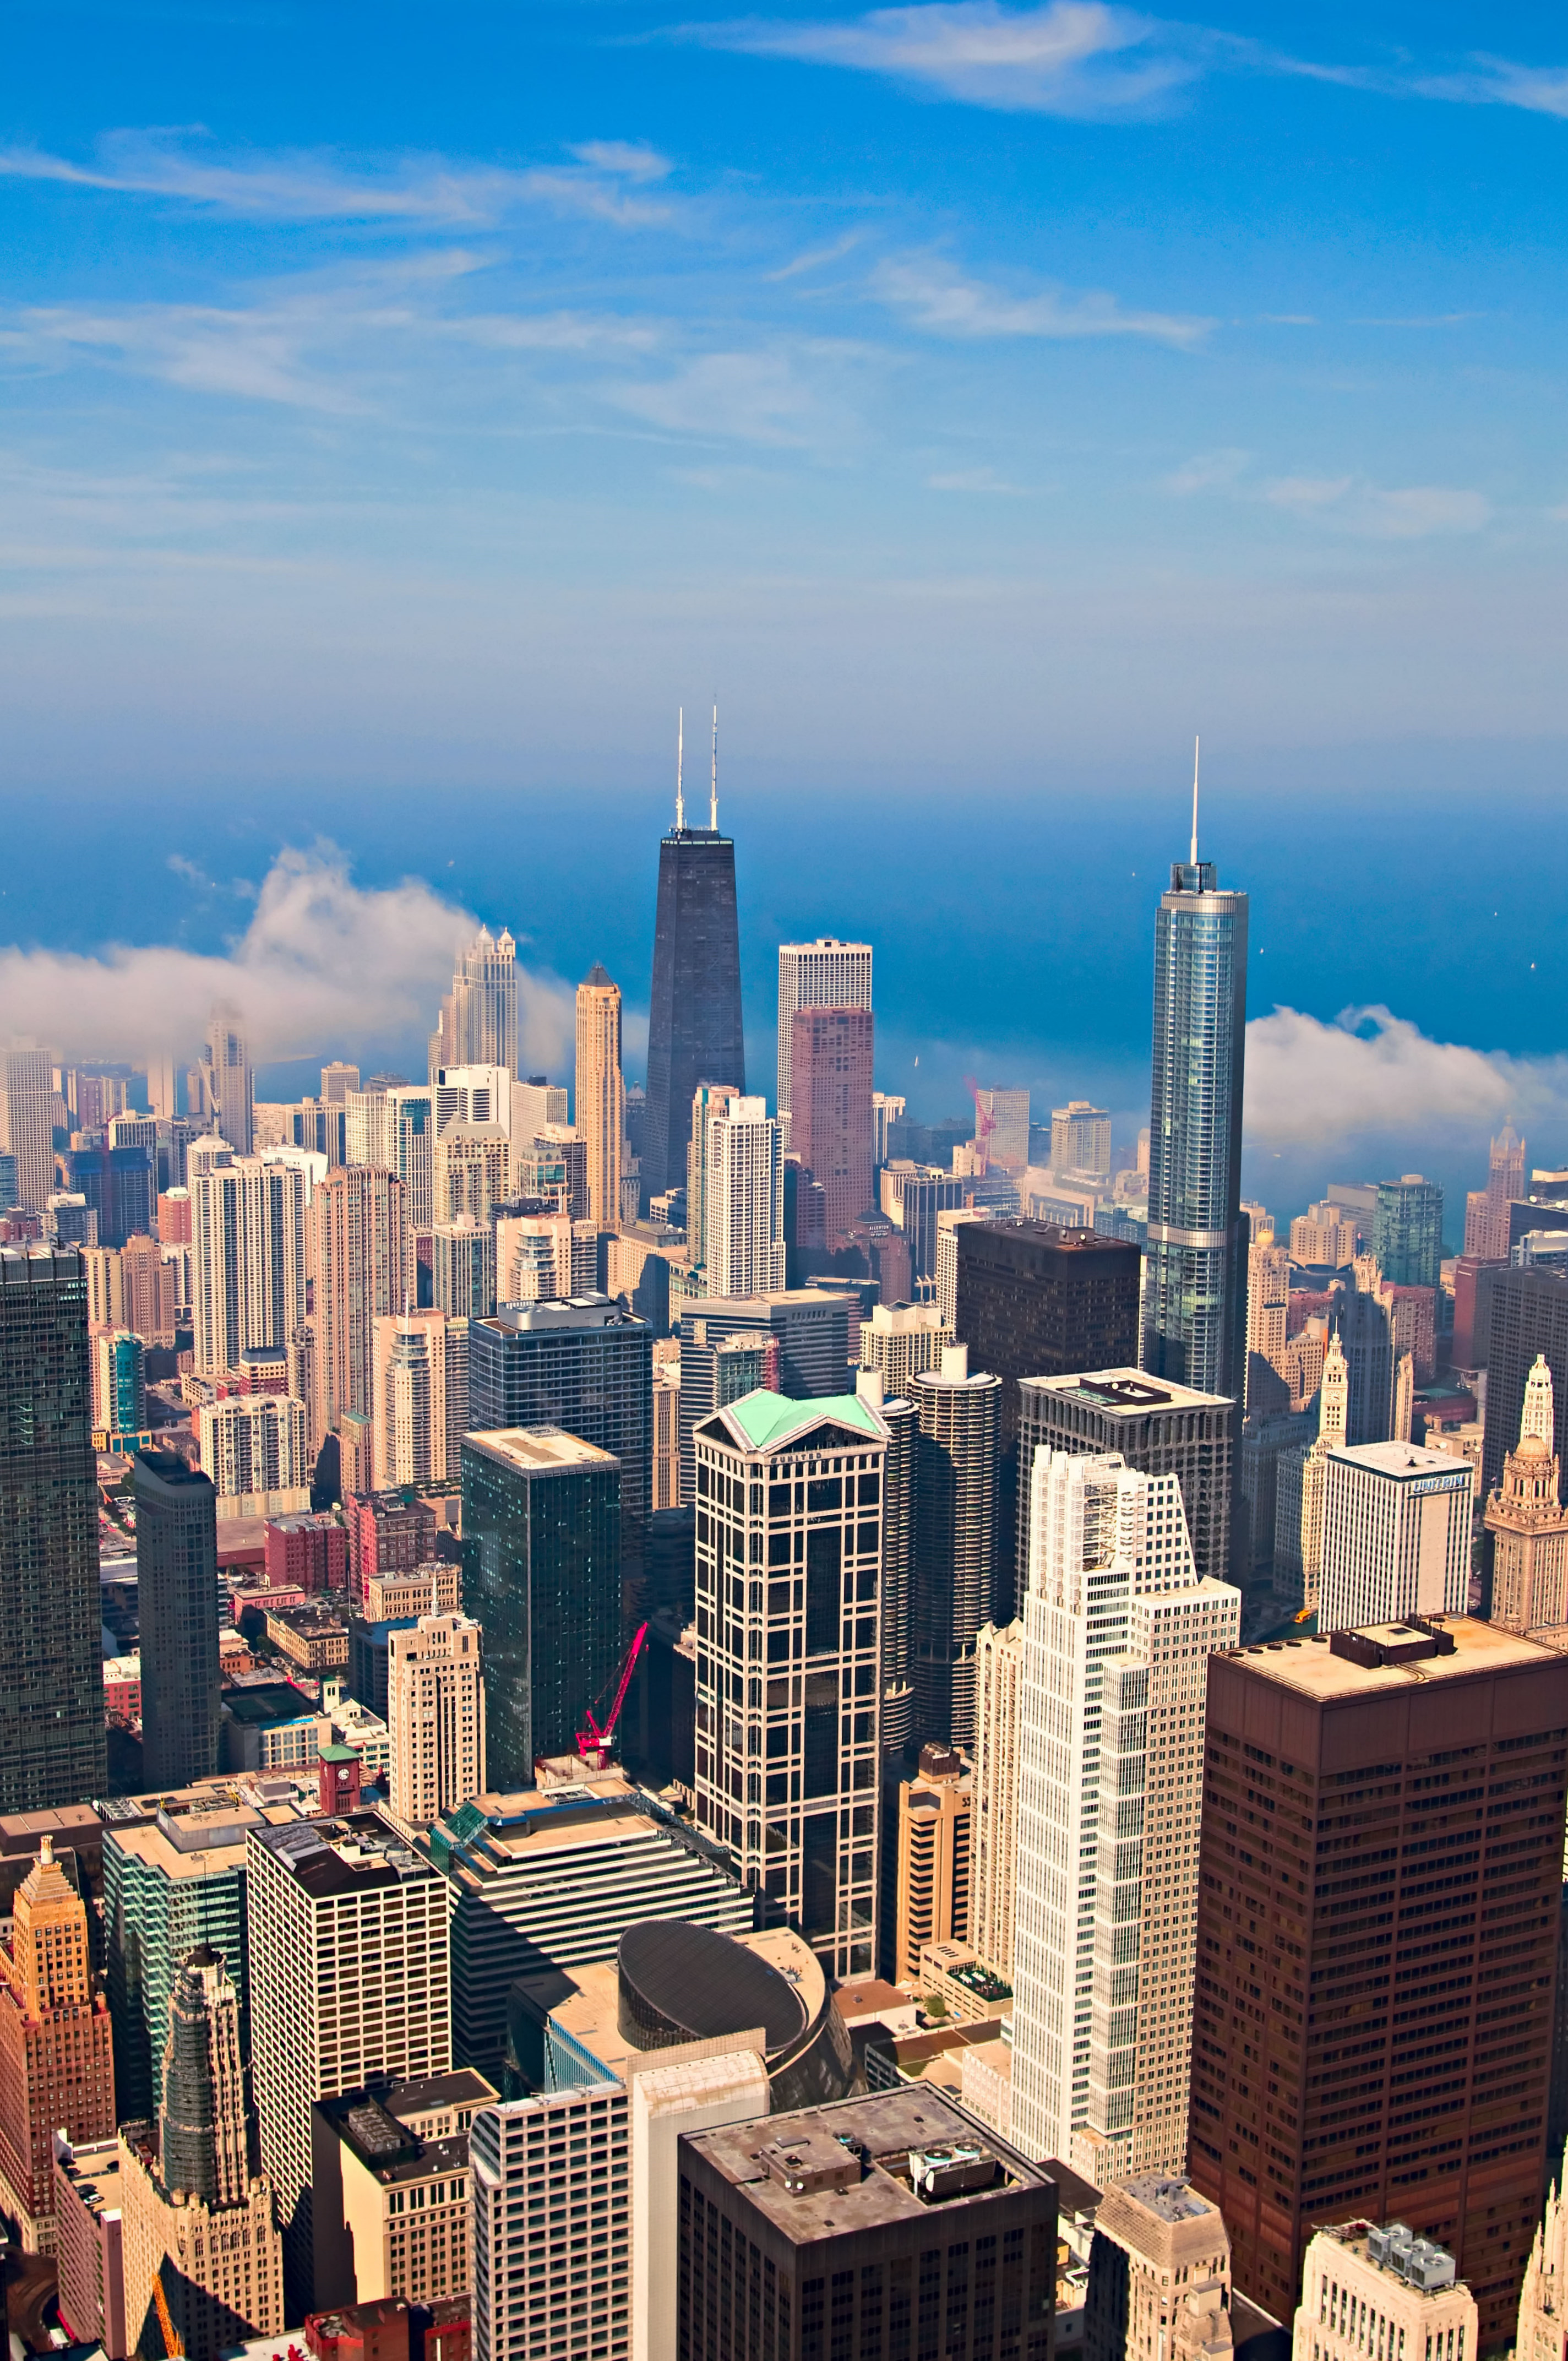 Dustin J Williams - Skyline from the Sears Tower